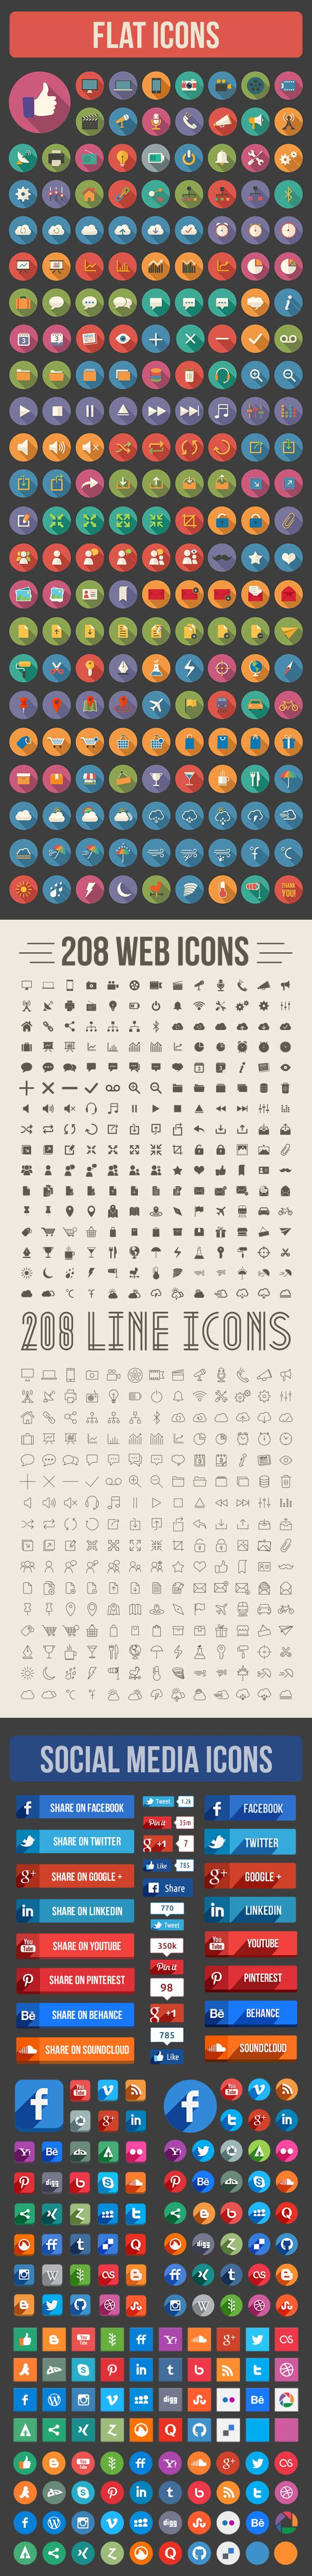 Icons pack by Hakan Ertan, via Behance http://www.behance.net/gallery/Icons-pack/10459897